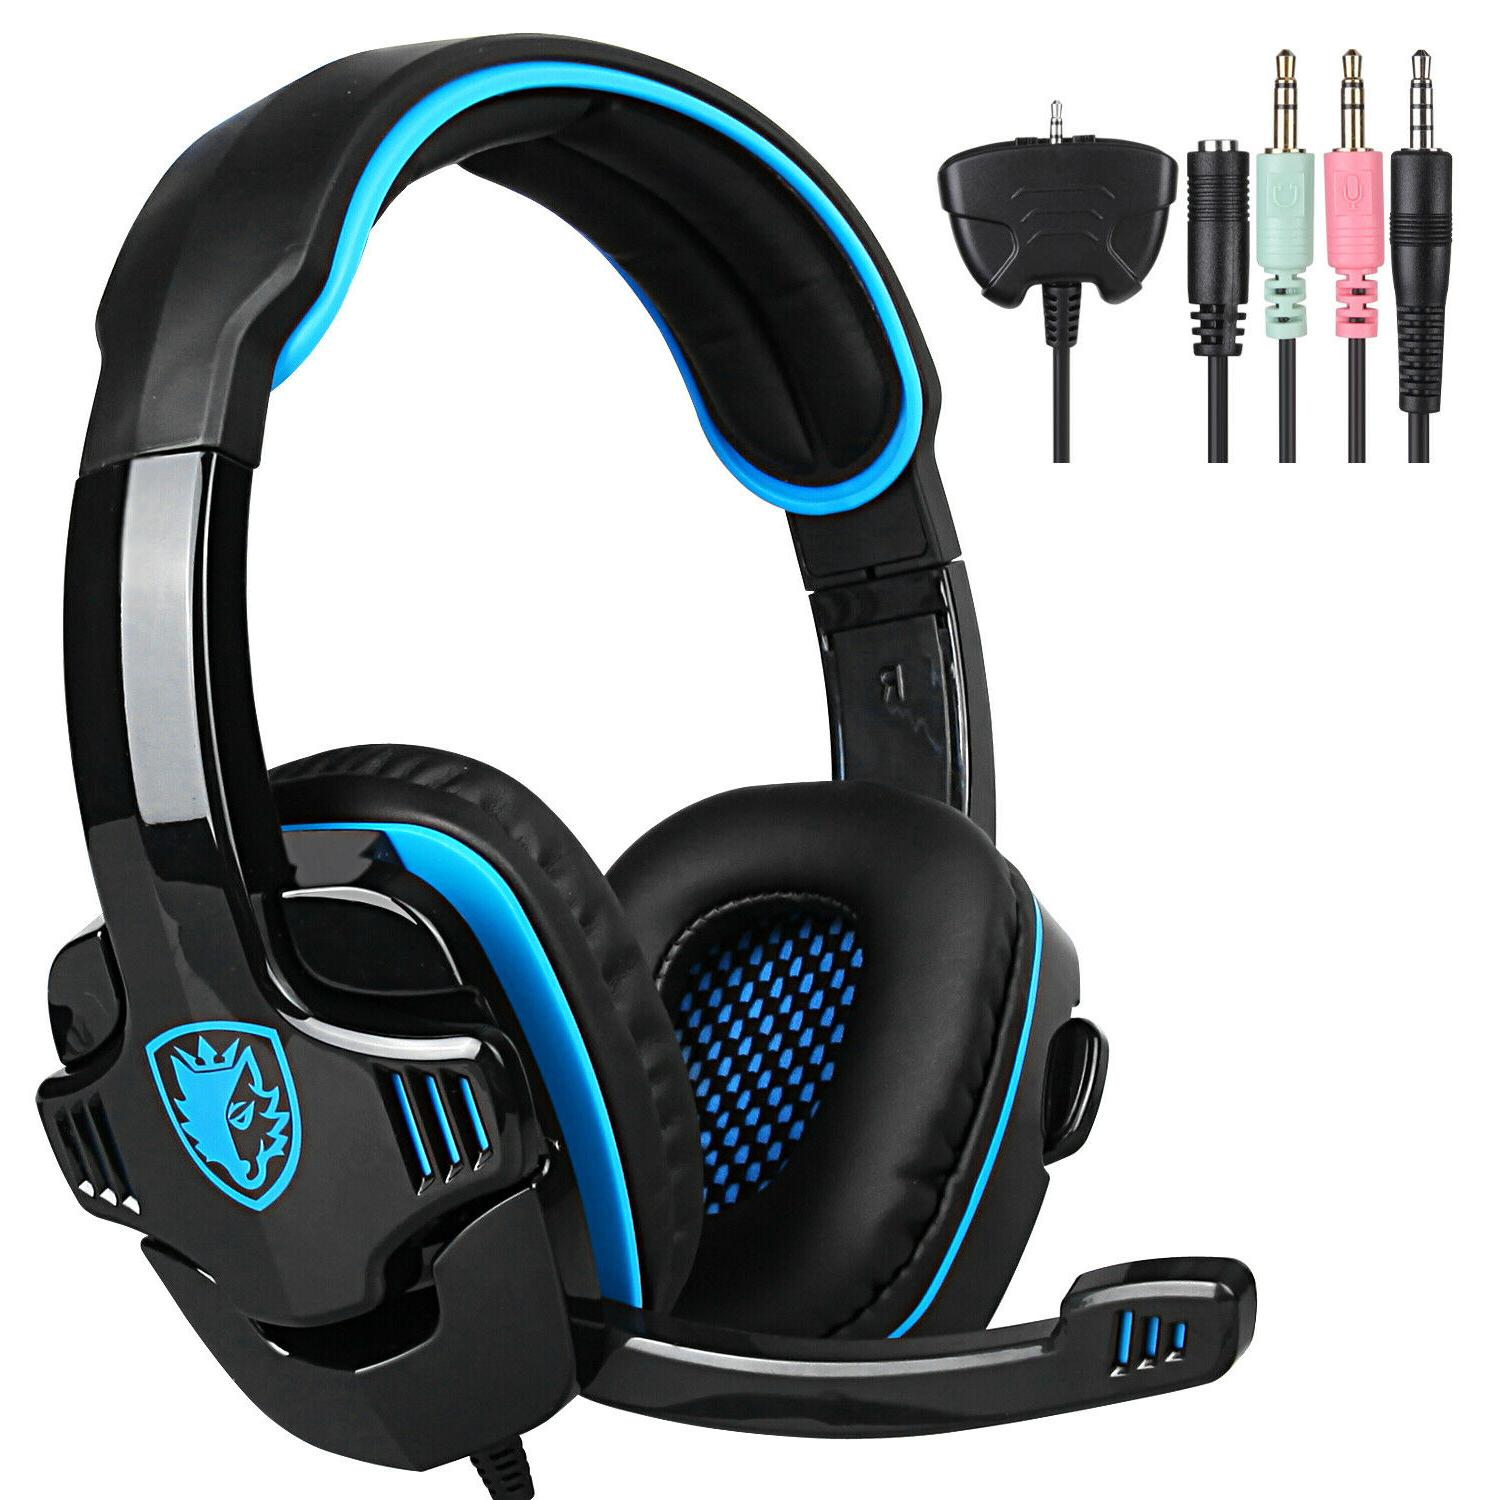 PS4 Gaming Headset Xbox One Headphone PC Earphone Stereo Bas